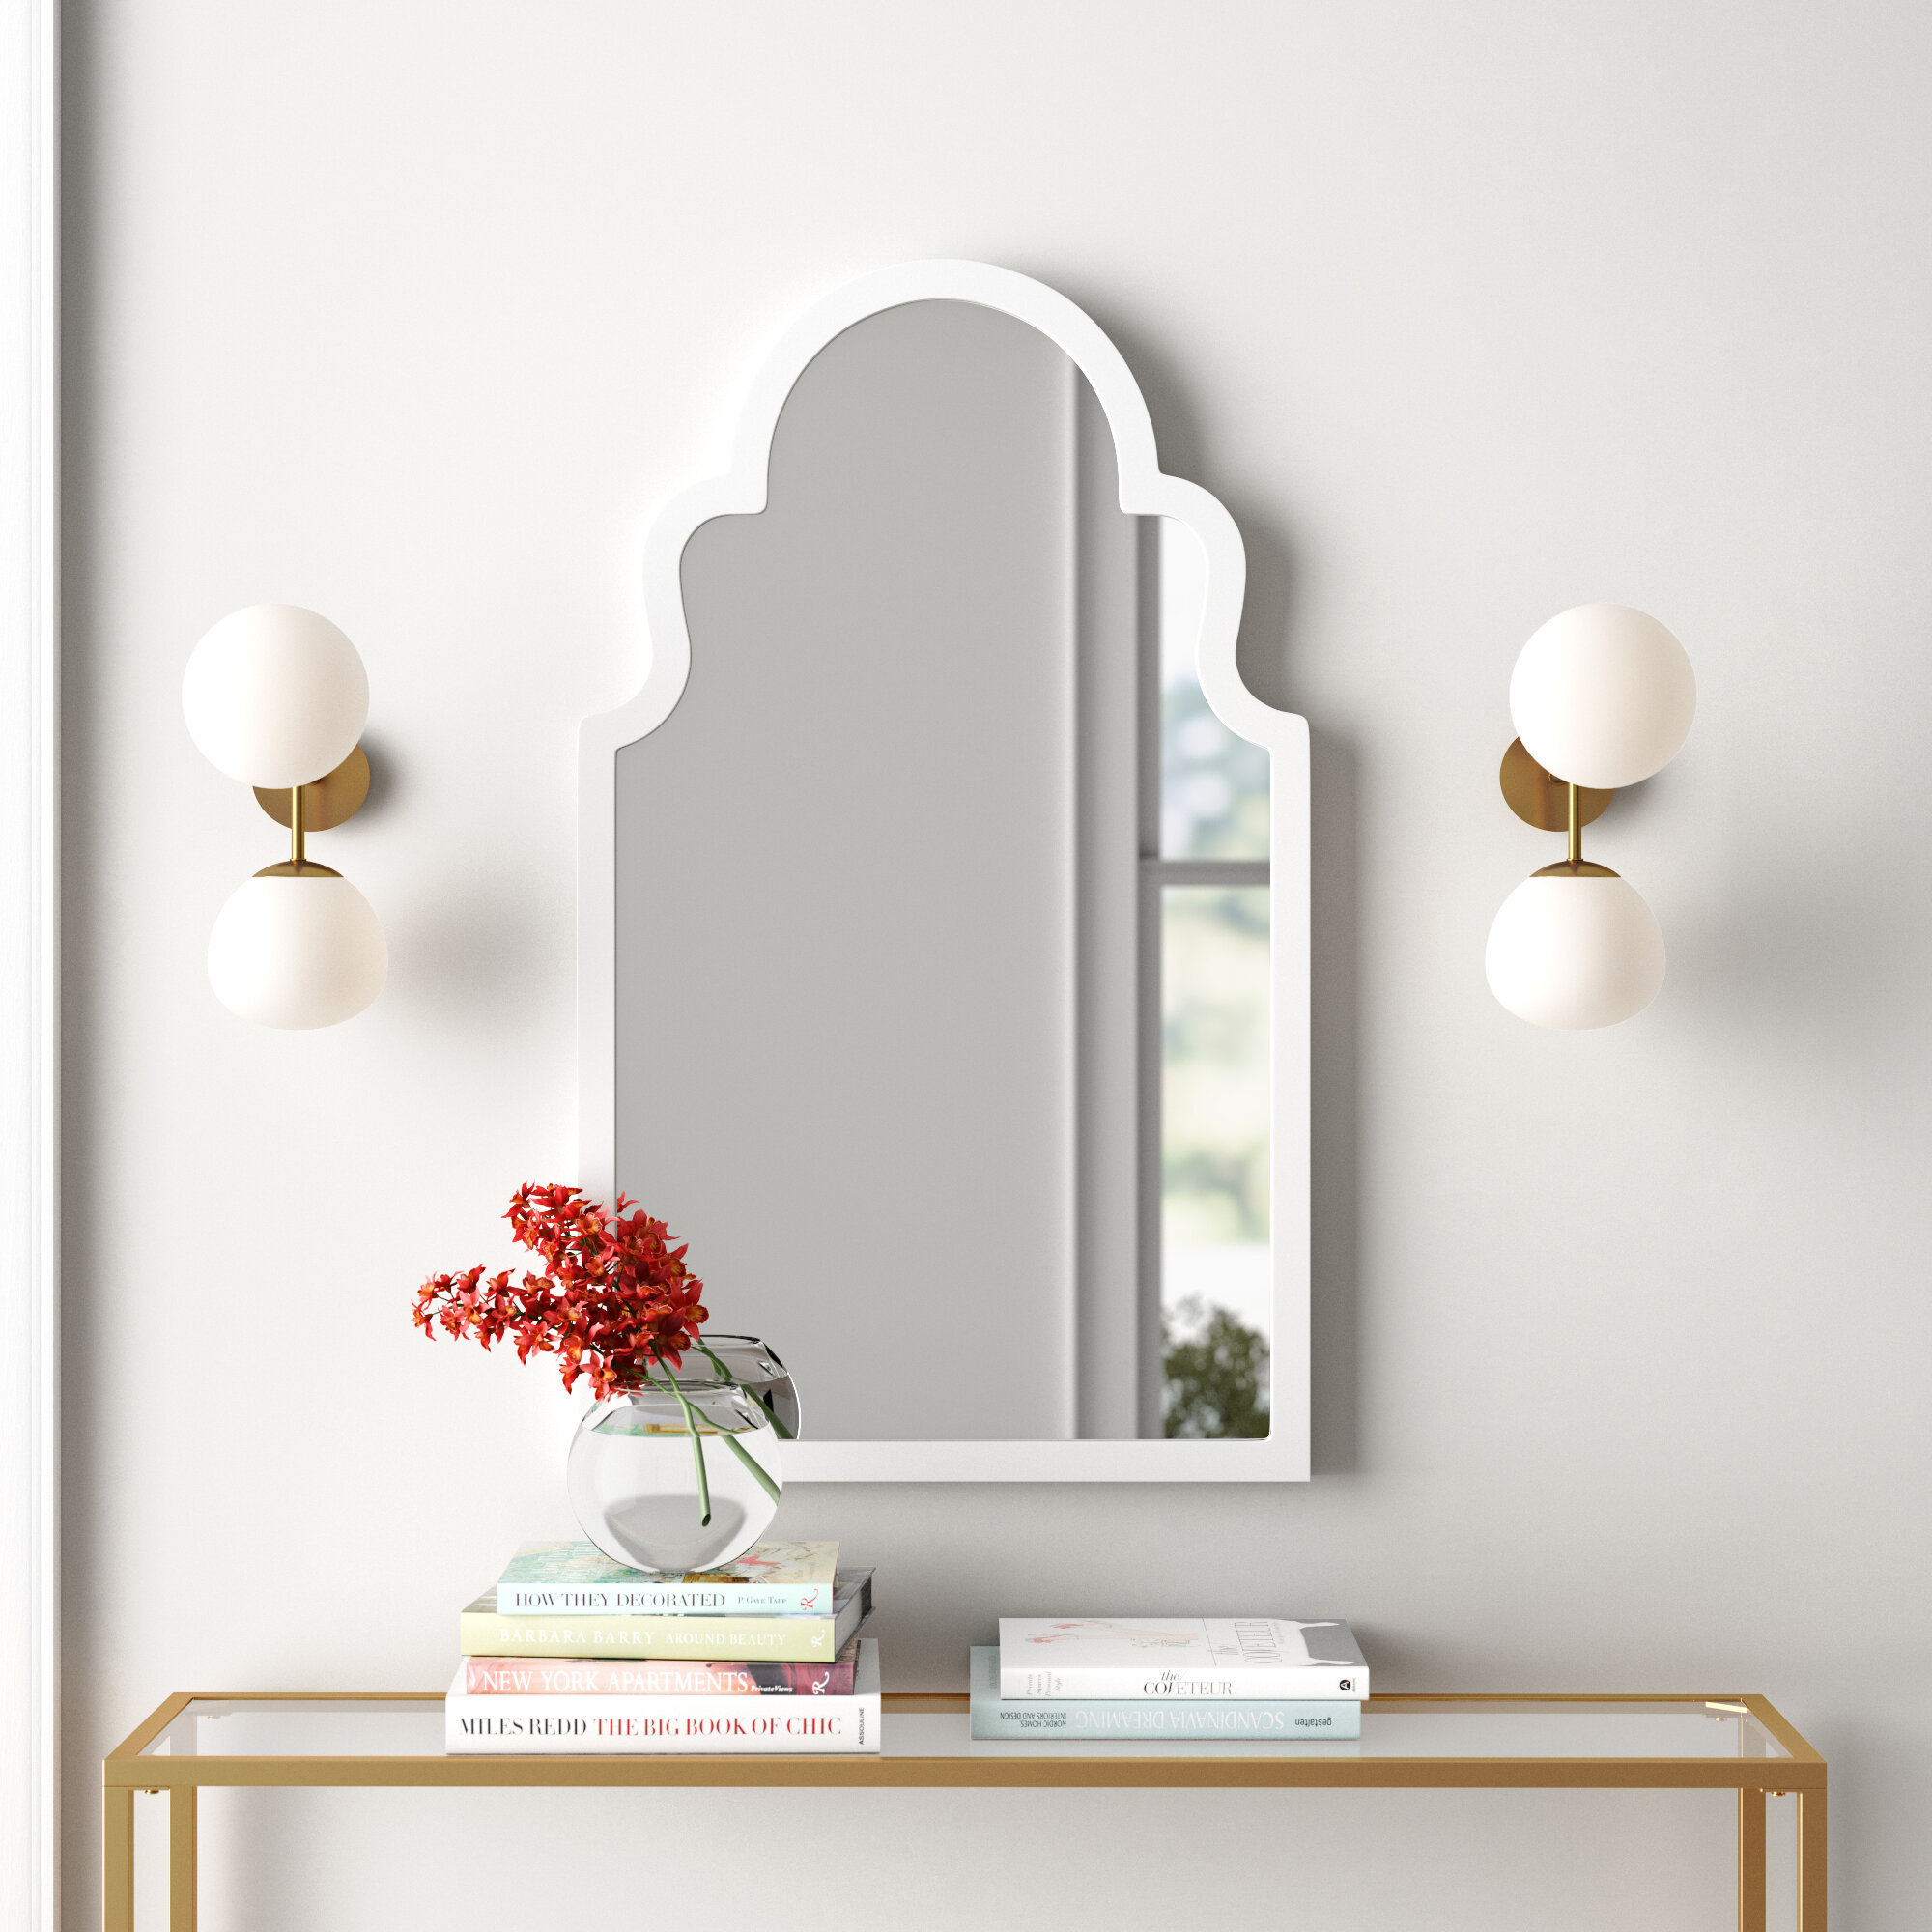 Arch Vertical Wall Mirror Throughout Dariel Tall Arched Scalloped Wall Mirrors (Image 3 of 20)